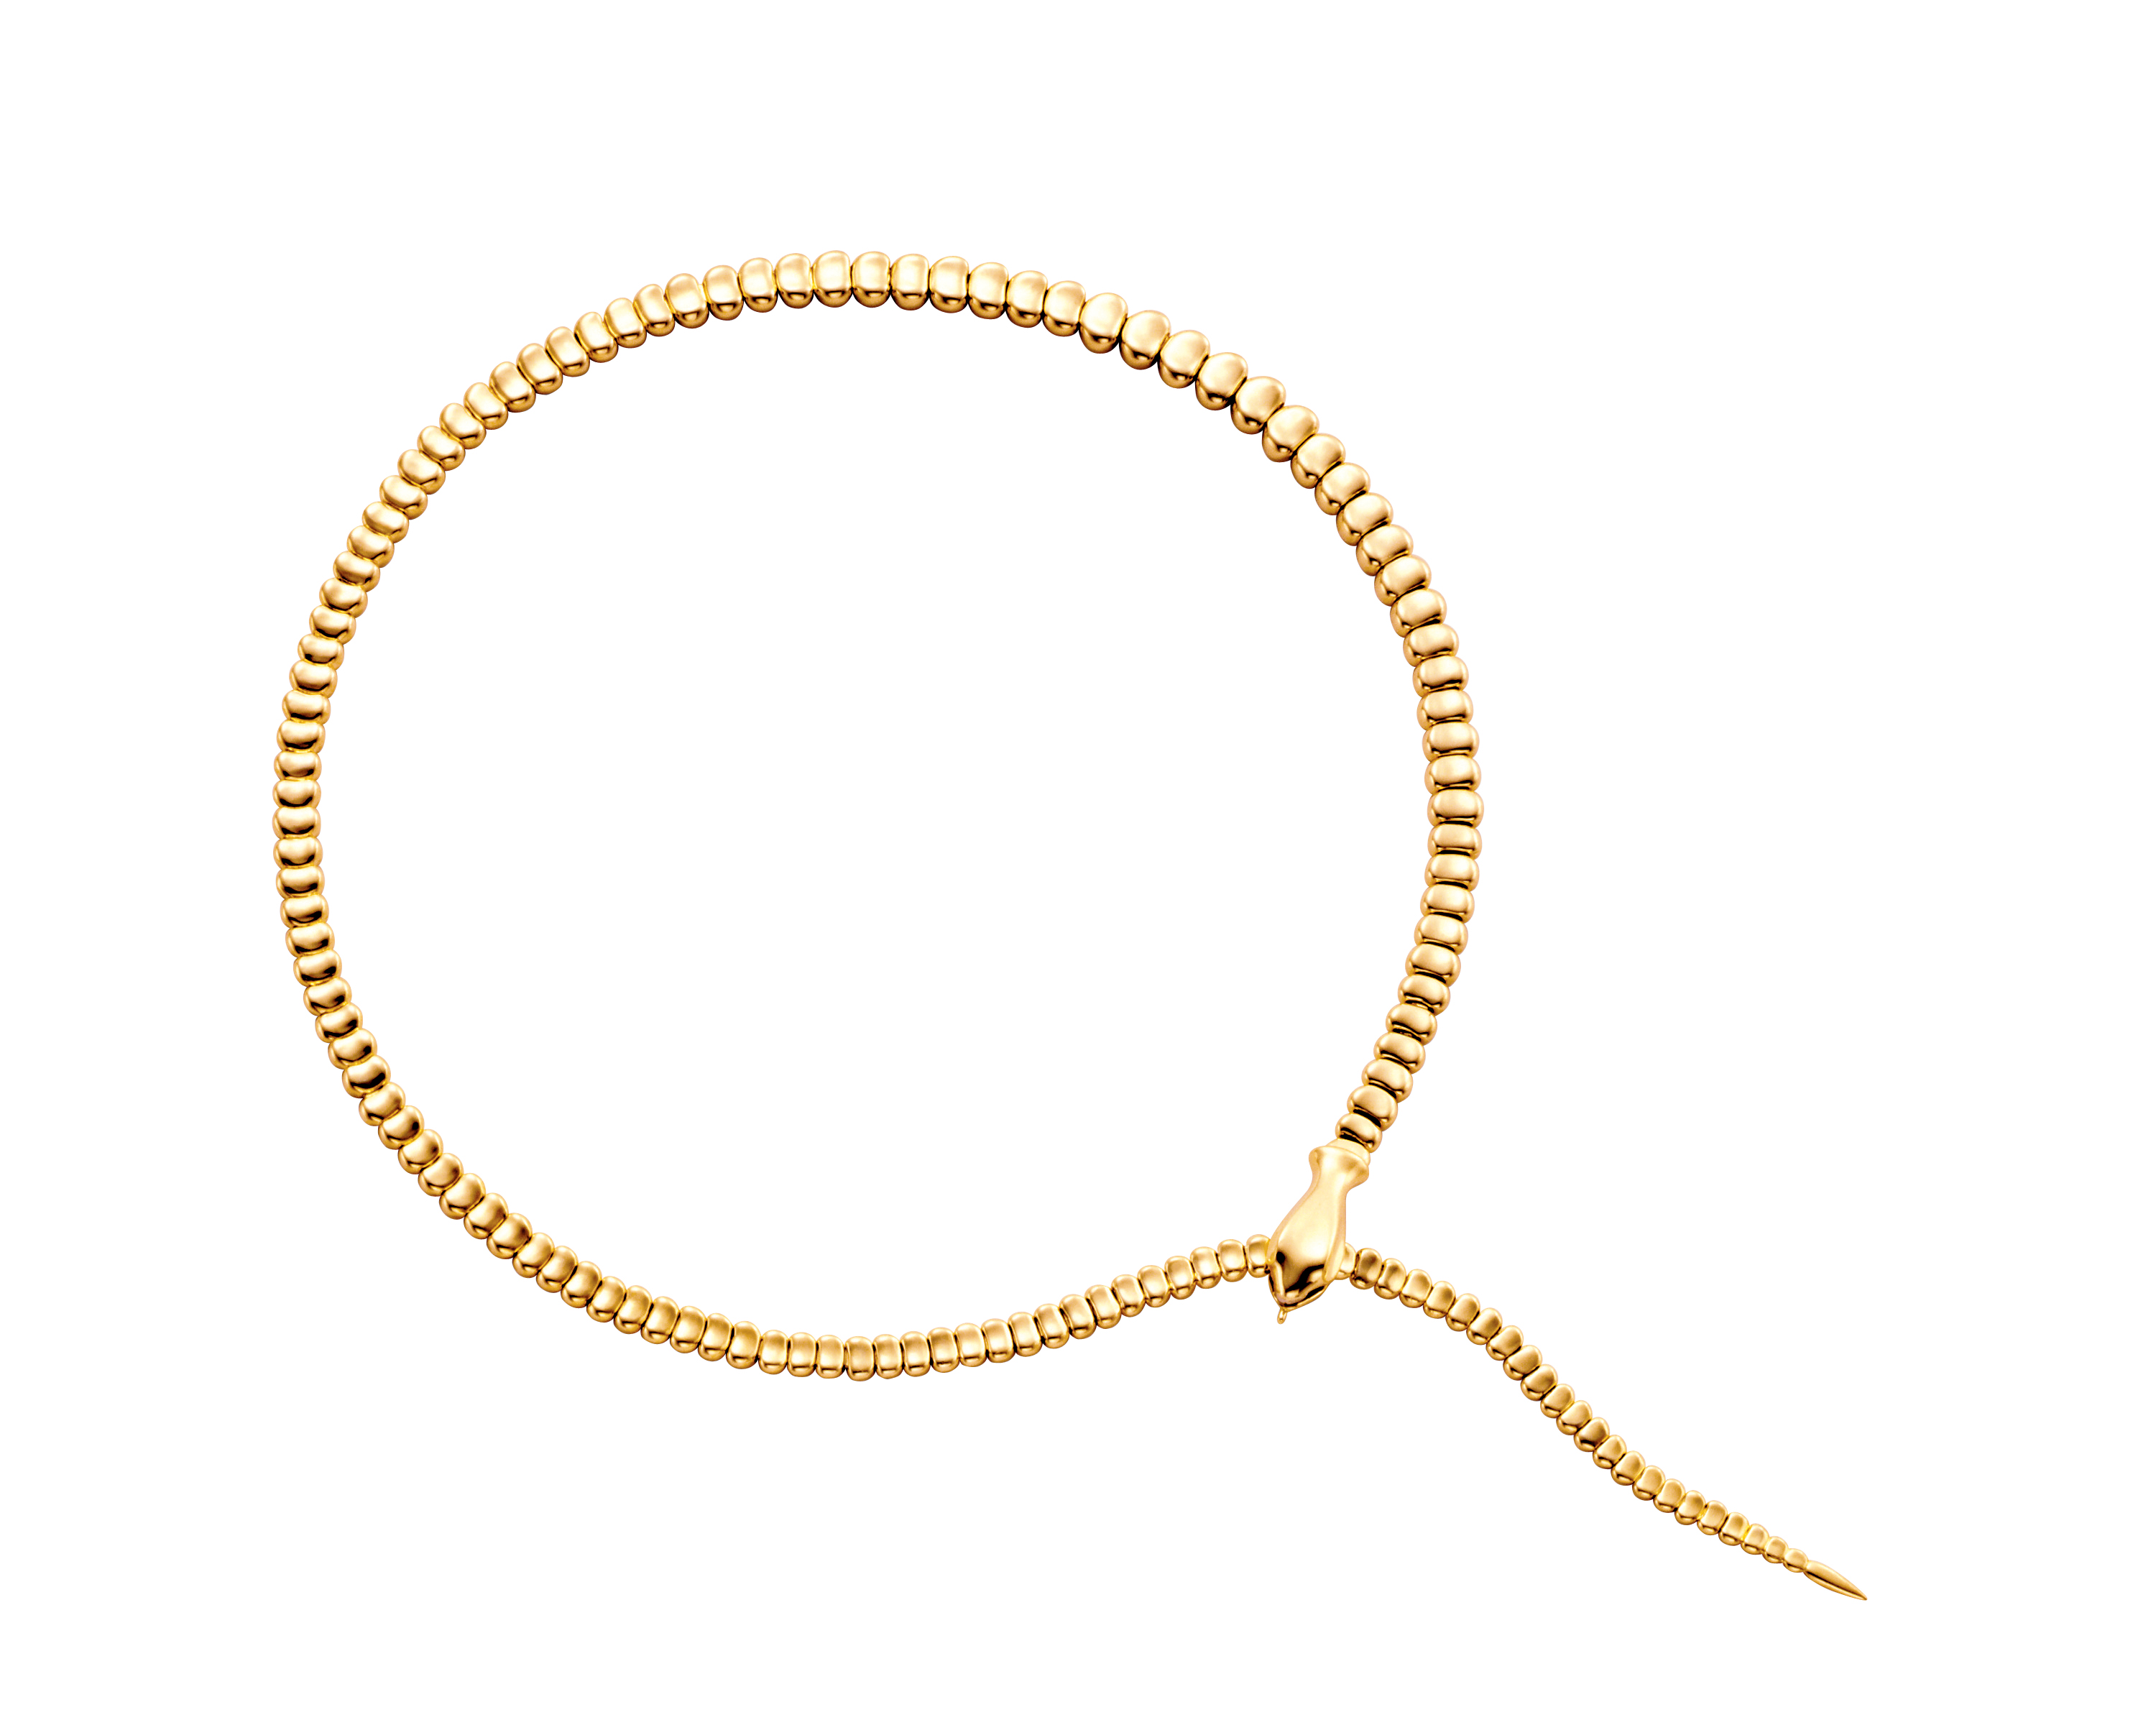 Tiffany & Co. Celebrates The Year of the Snake With New Elsa Peretti Snake Necklace